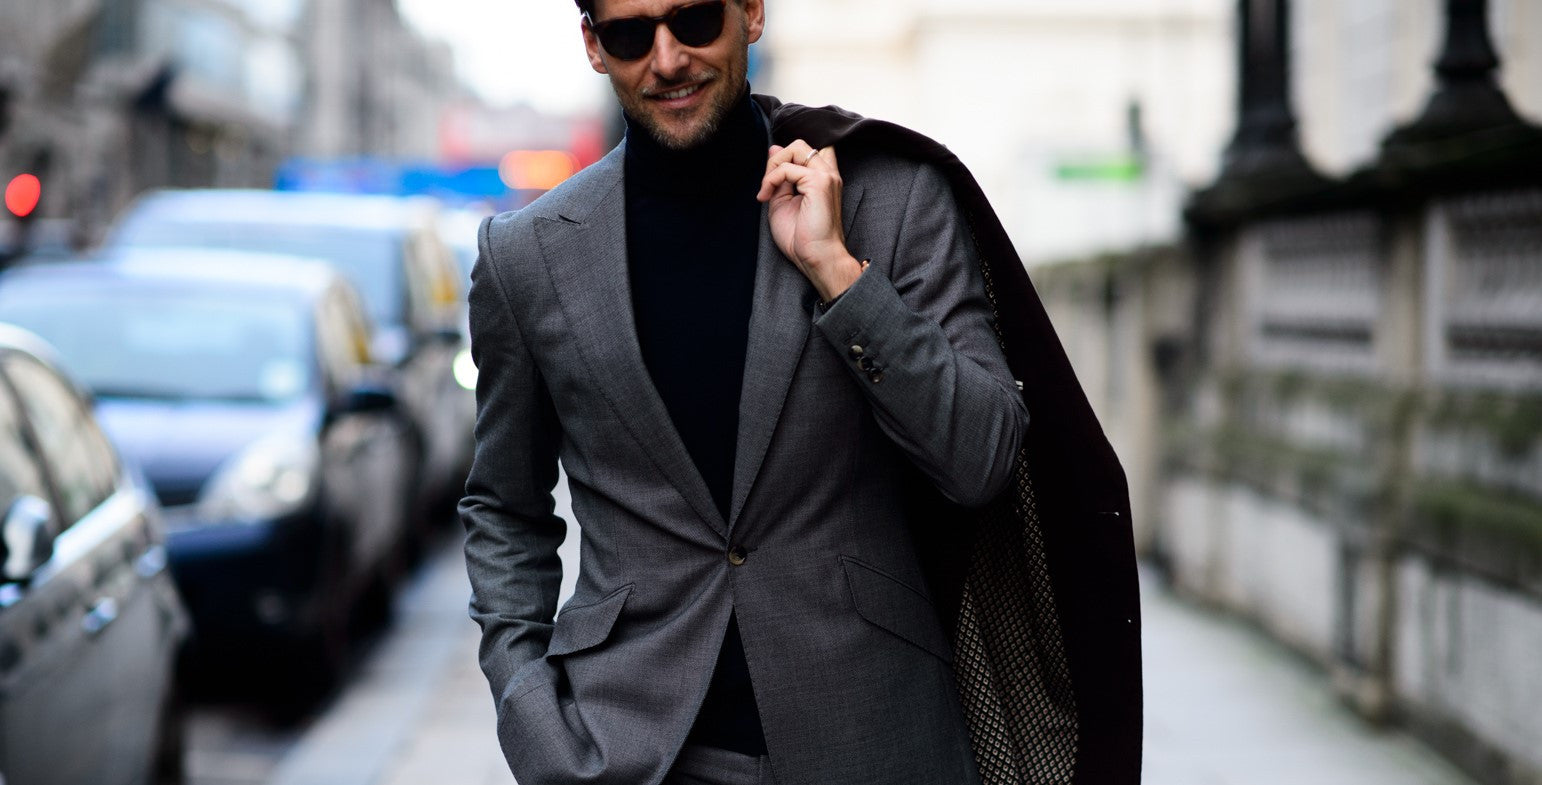 How To Dress For Your Shape: A Man's Guide